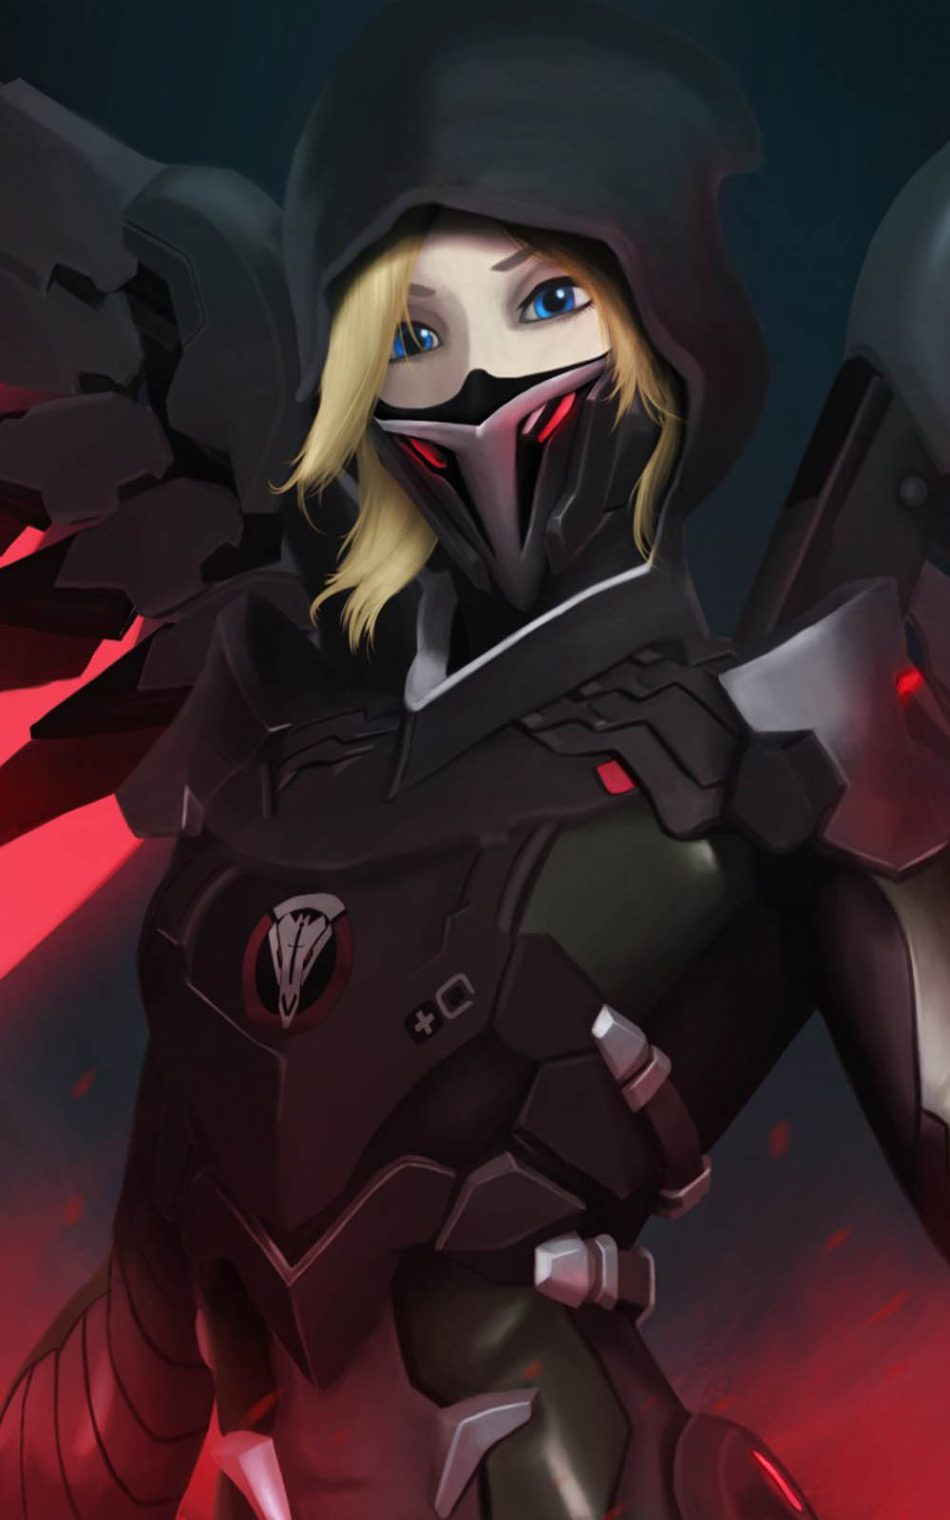 Blackwatch Mercy Overwatch Download Free 100 Pure Hd Quality Mobile Wallpaper